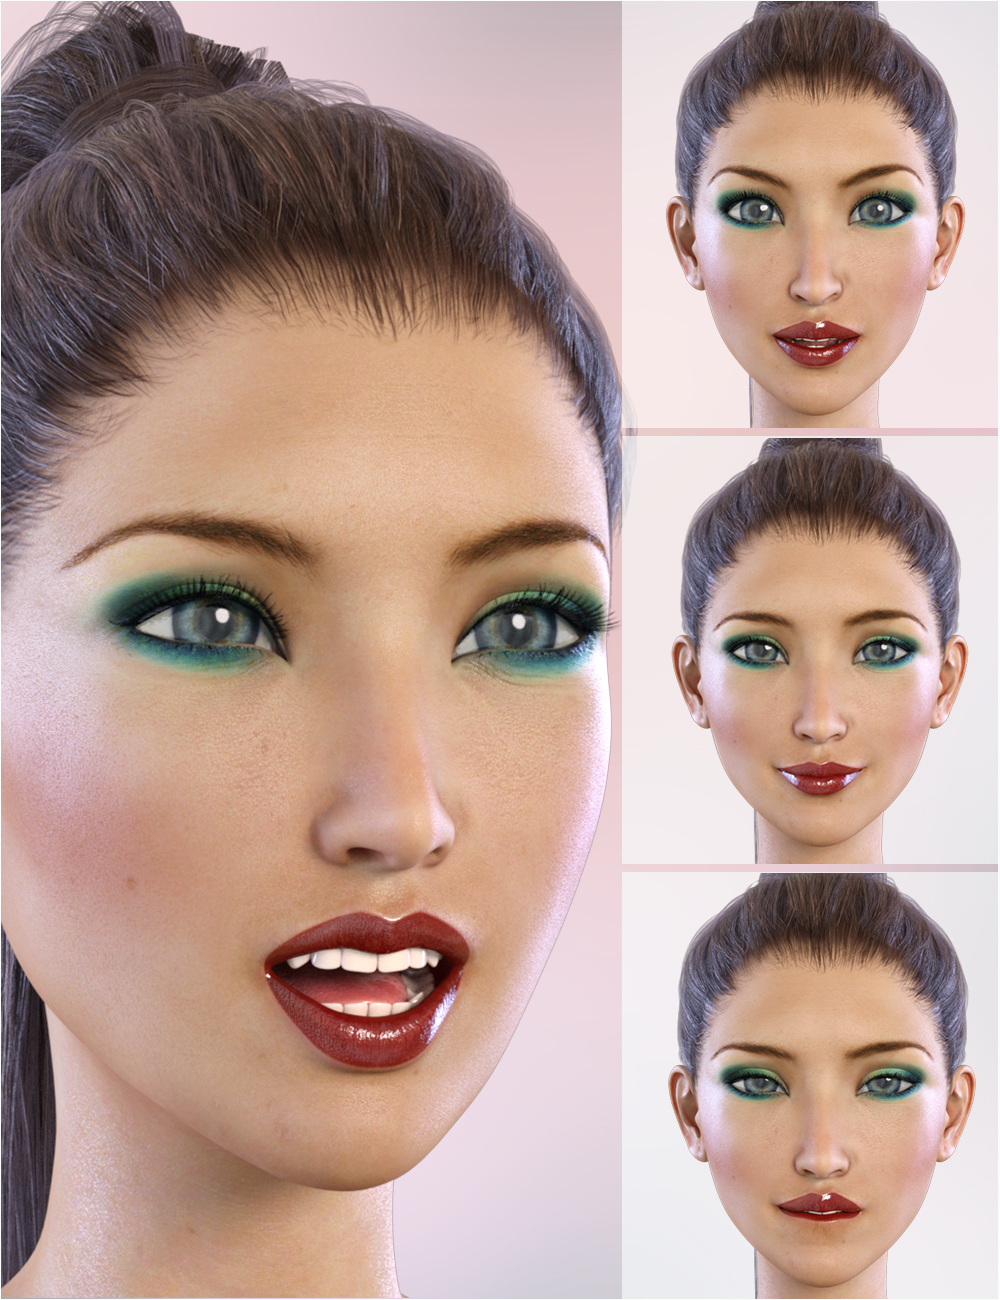 Z Dreamer Expressions for Aiko 7 by: Zeddicuss, 3D Models by Daz 3D